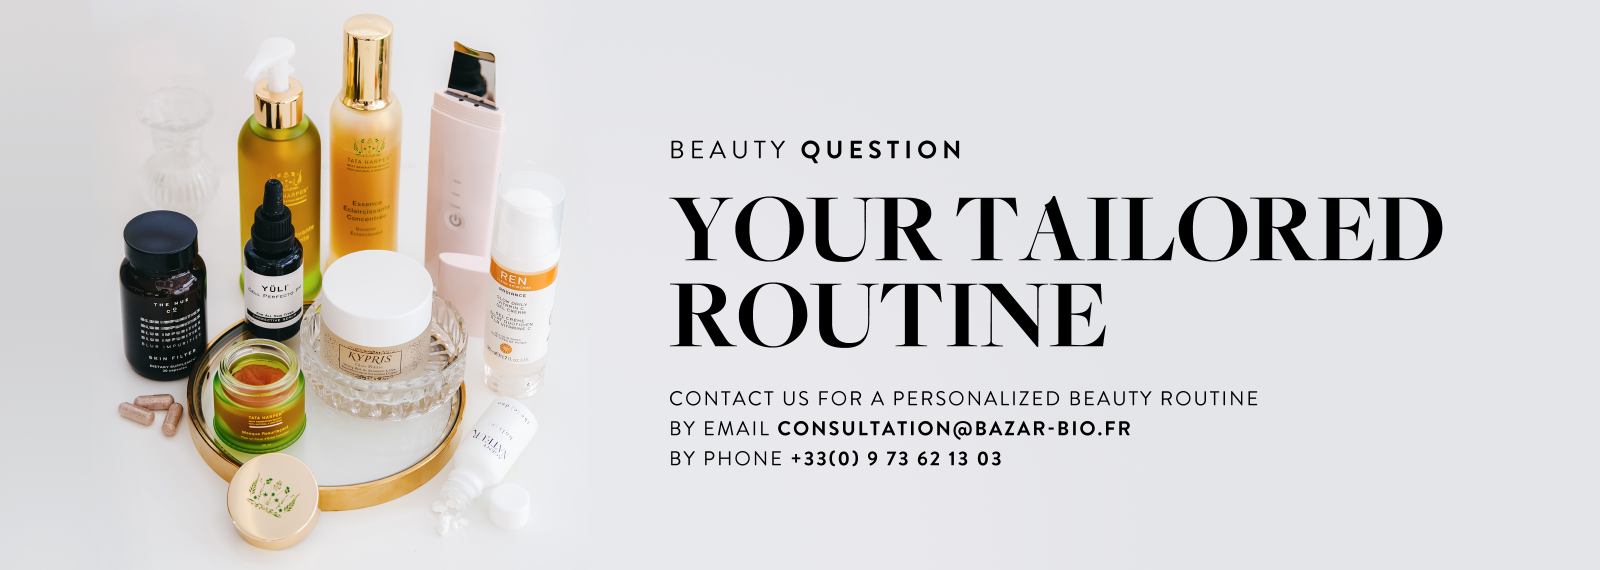 contact us for a personalized beauty routine